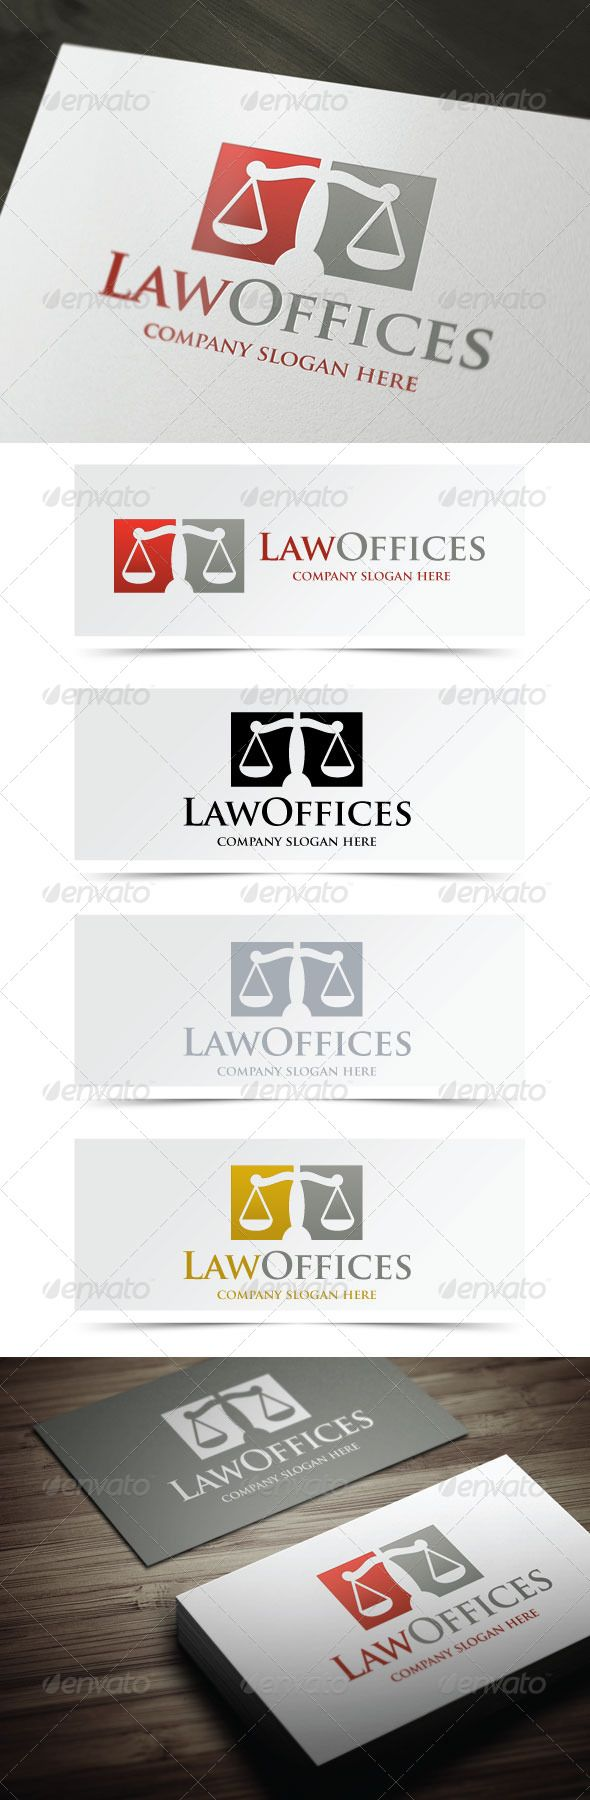 Law Offices http://graphicriver.net/user/debo243/portfolio